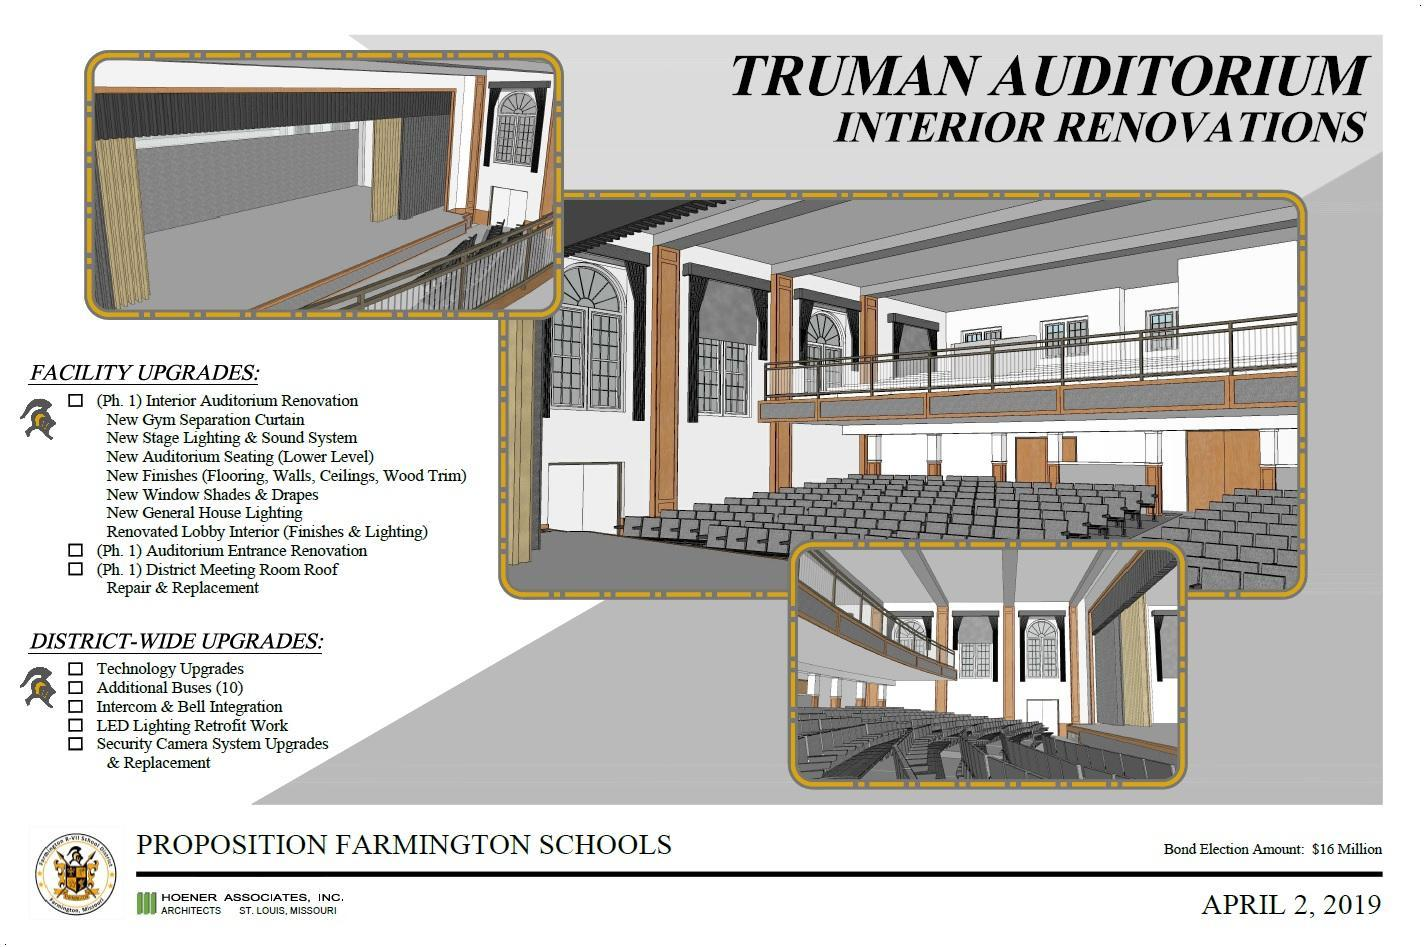 Truman Auditorium Interior